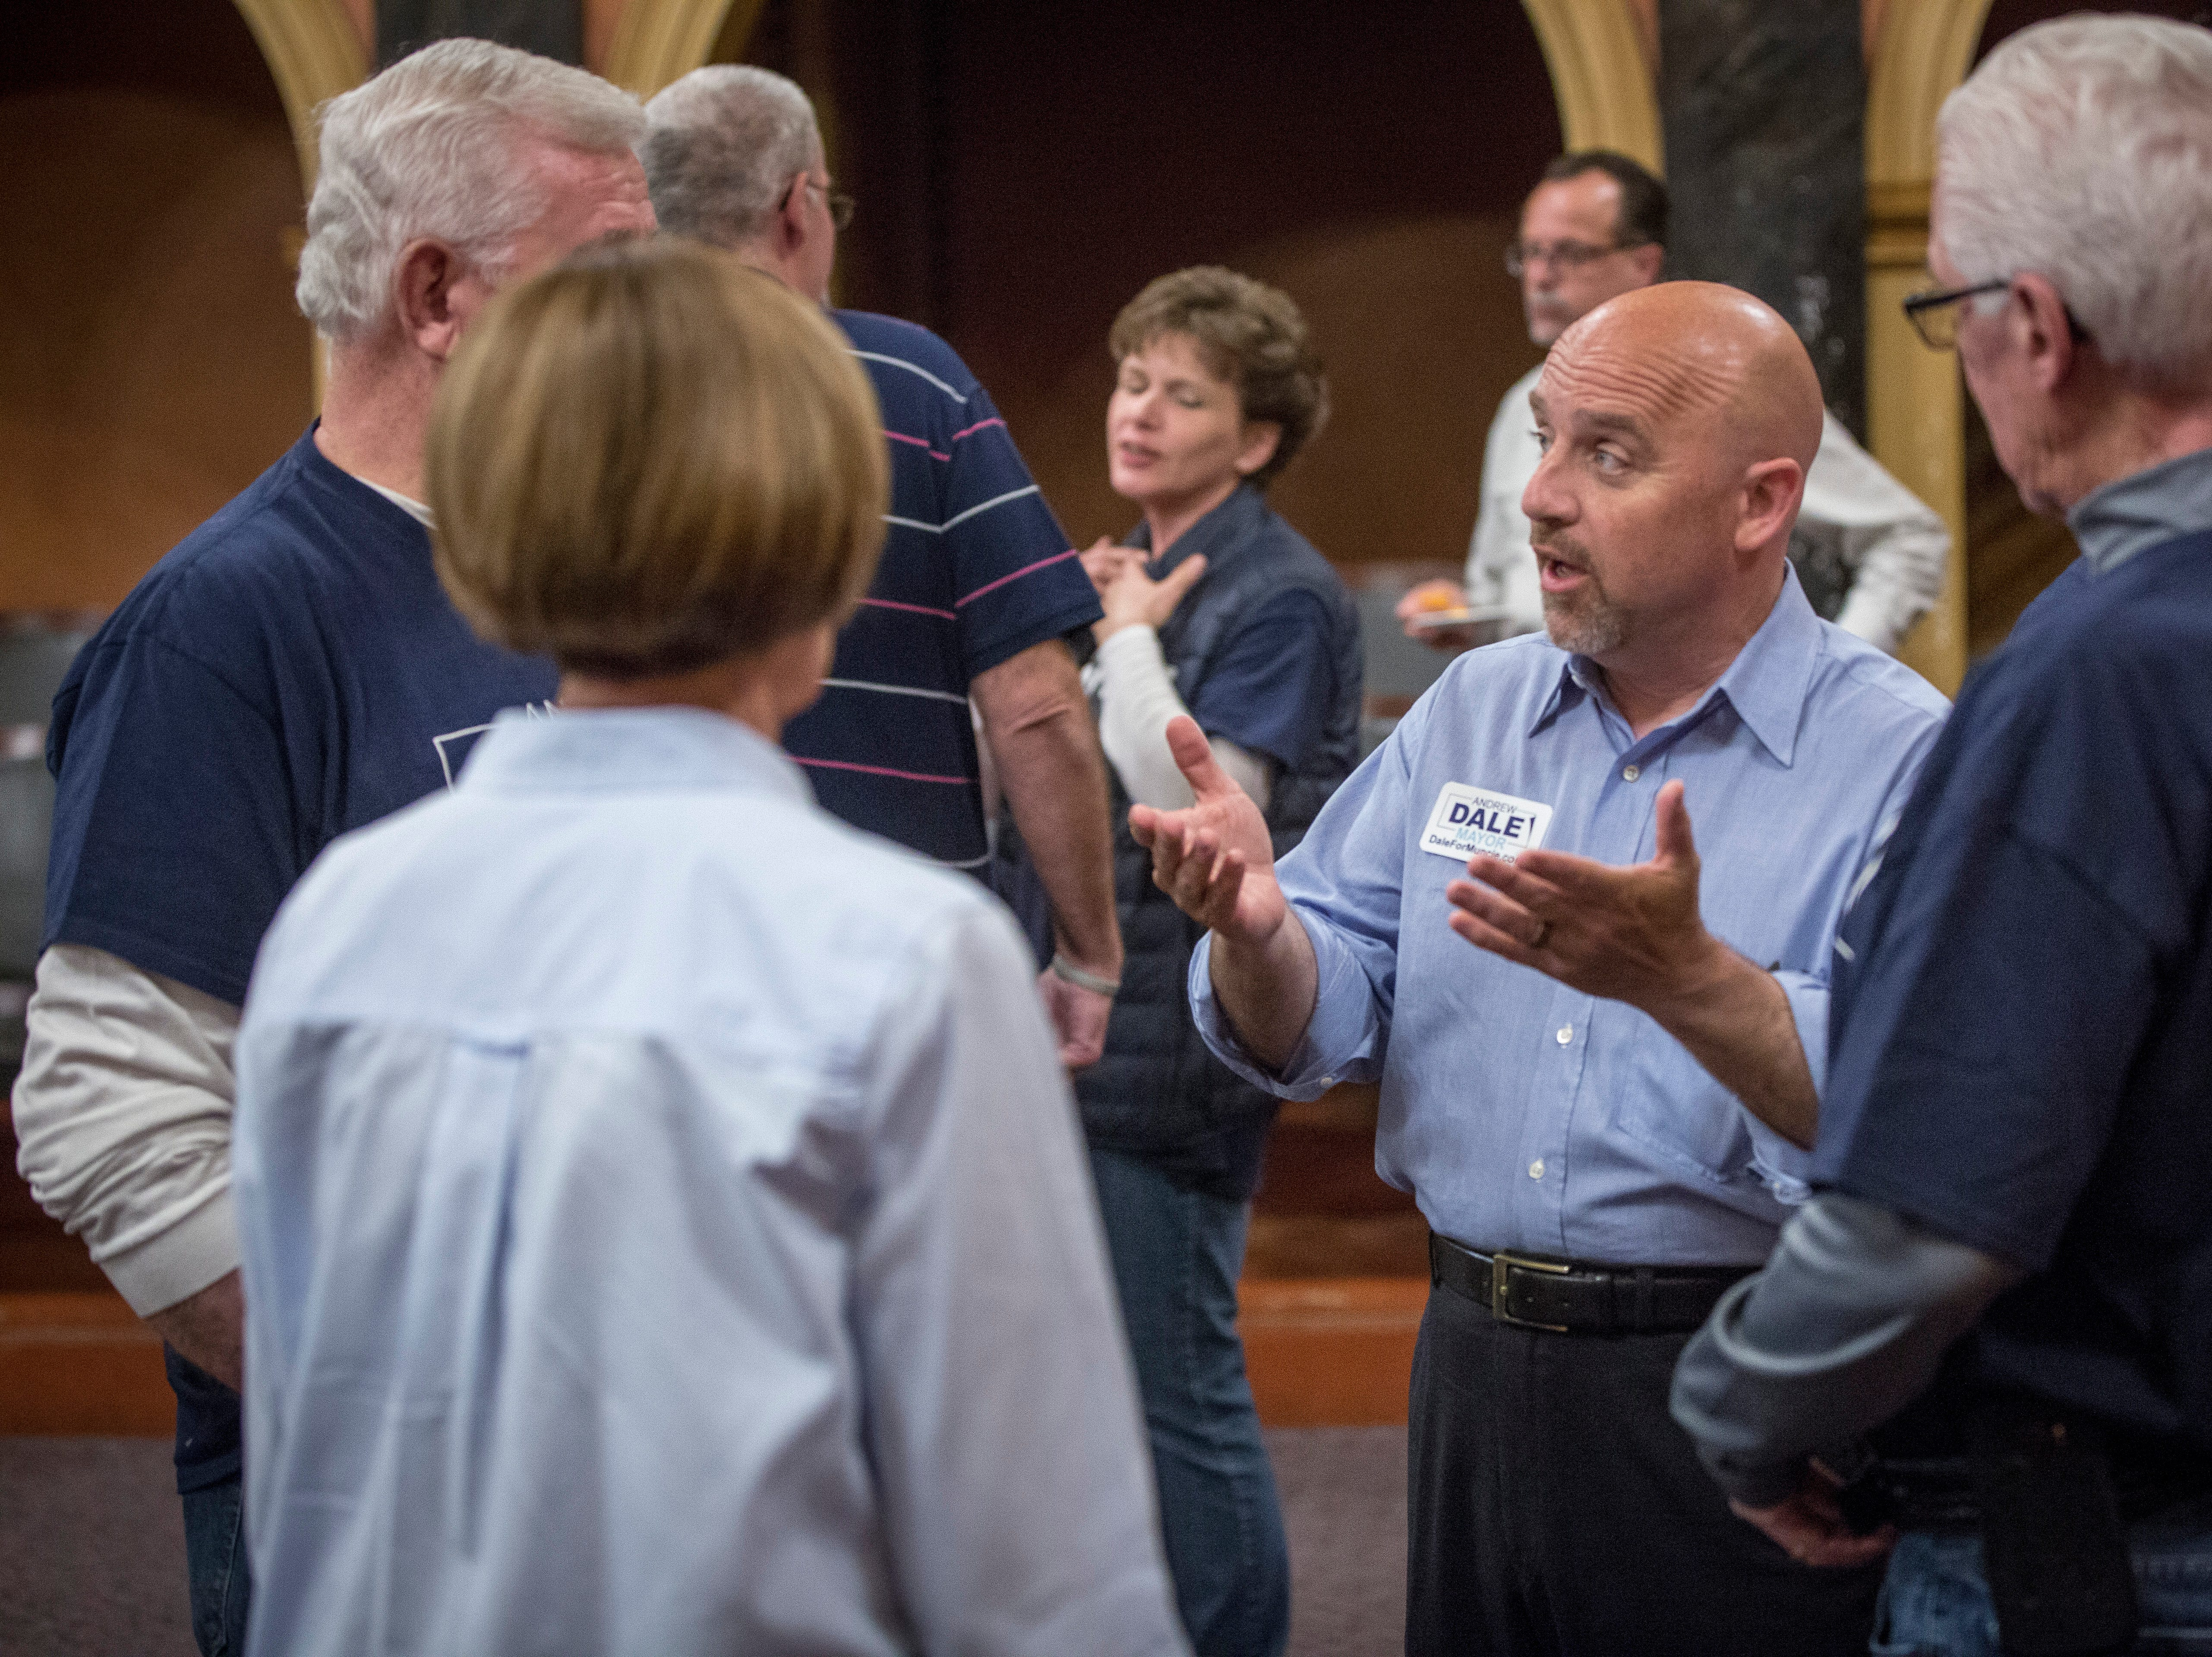 Andrew Dale talks with campaign staff and supporters before the election results came in. Dale lost the Democratic nomination for mayor by 256 votes.